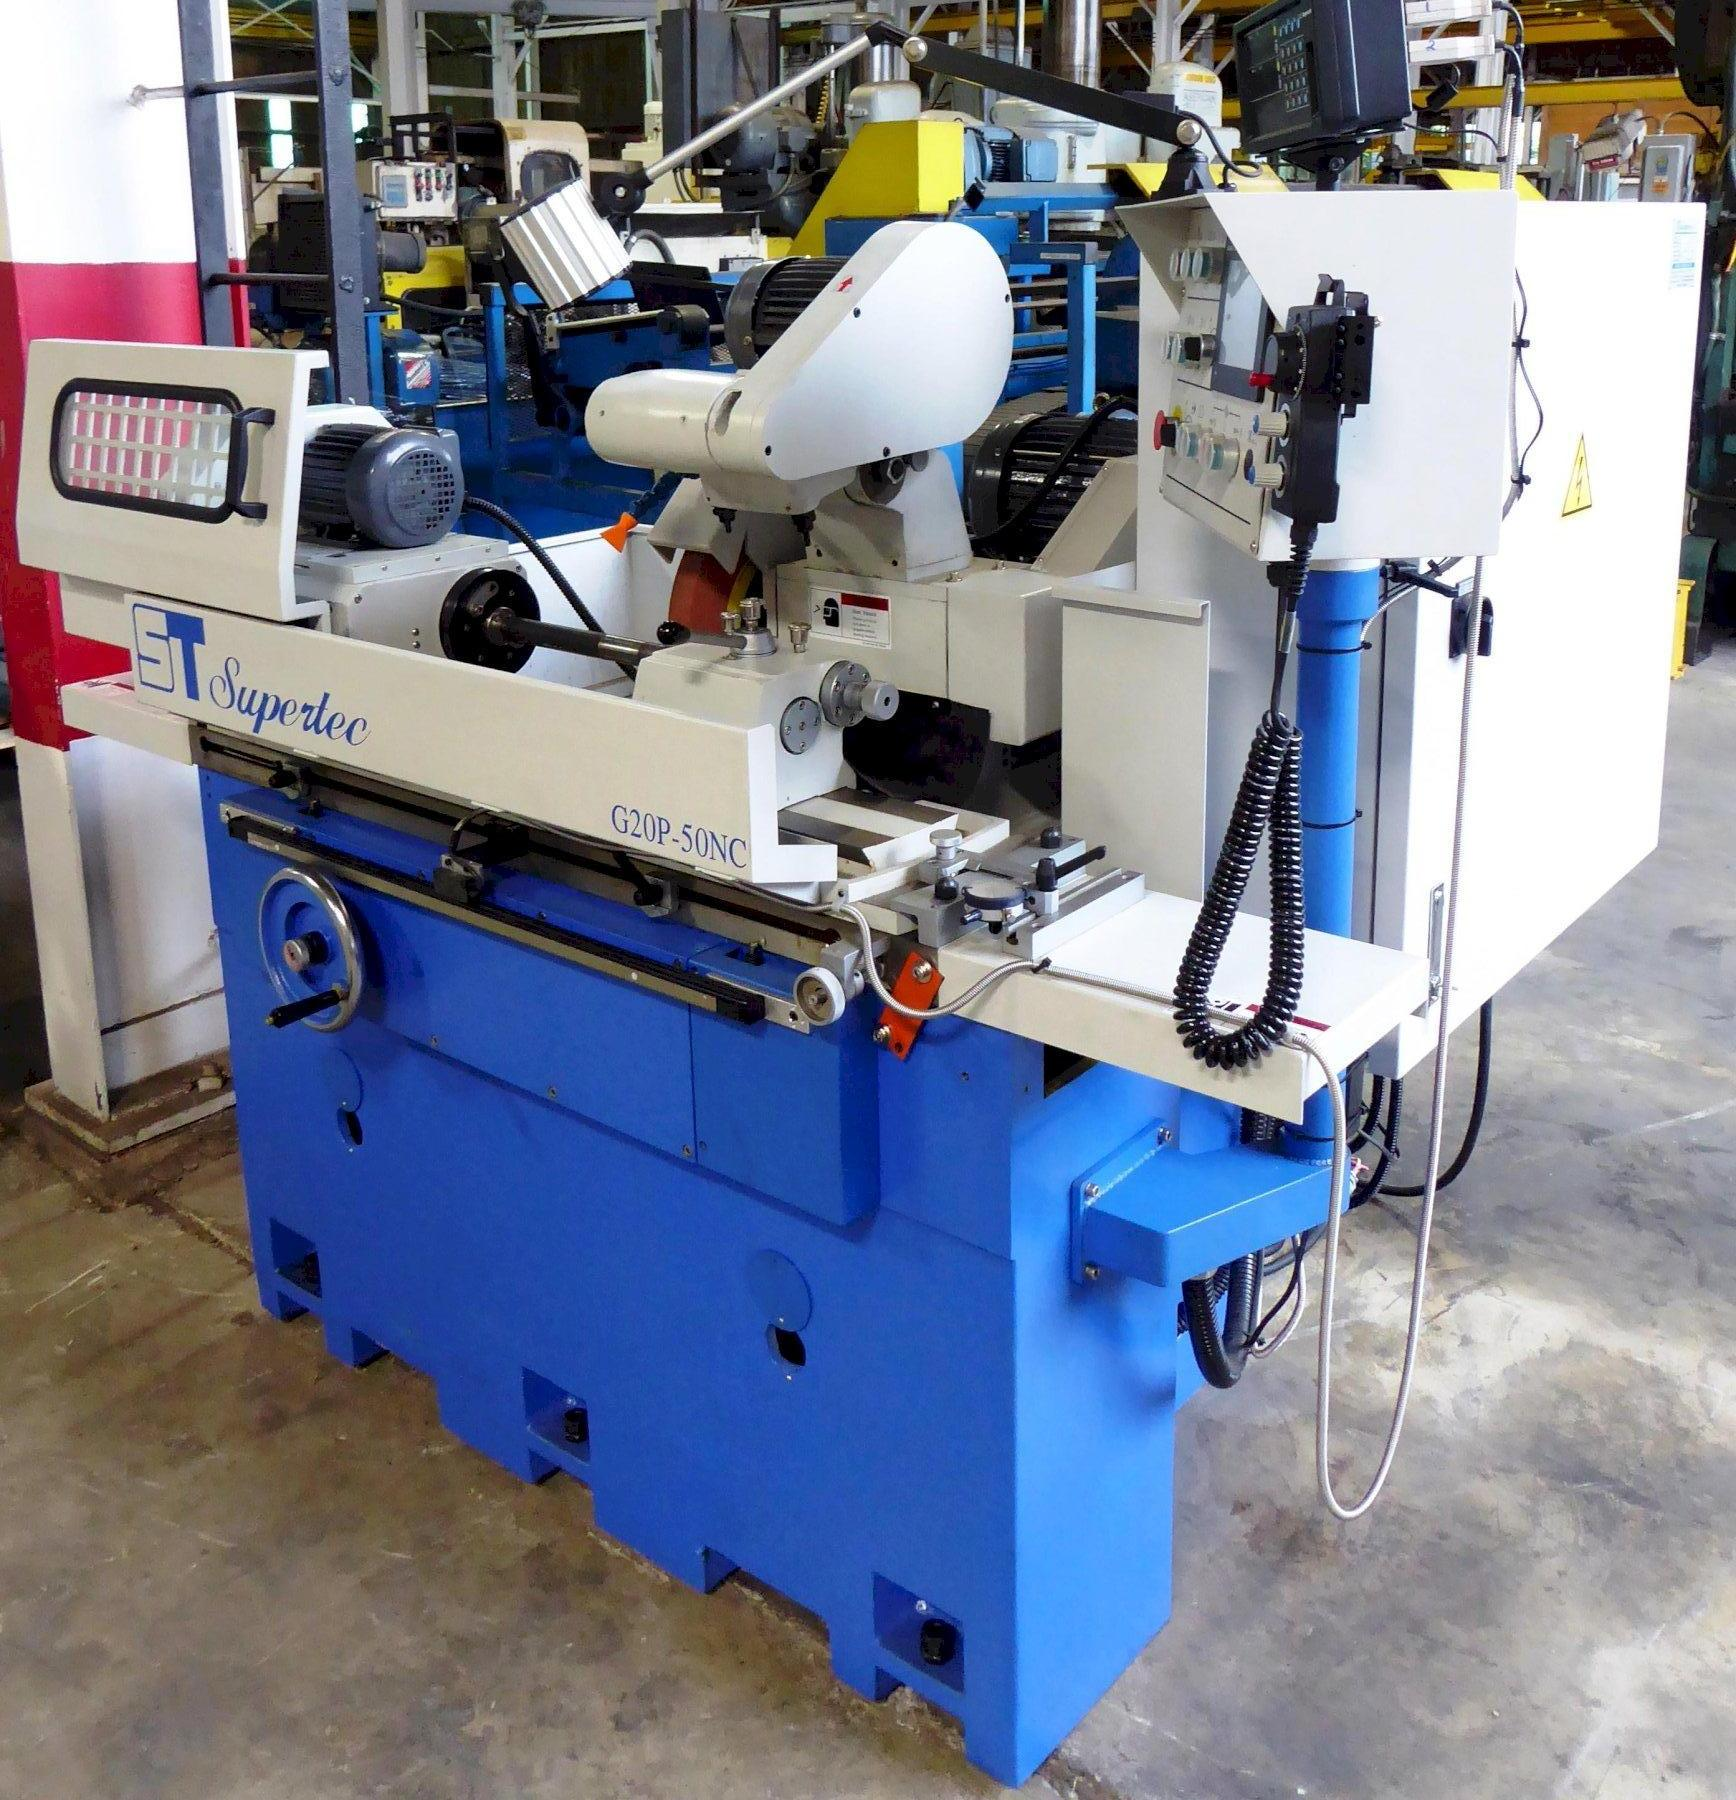 """8"""" x 20"""" Supertec Cylindrical Grinder G20P-50NC, I.D. Attachment, DRO, Like New Condition"""